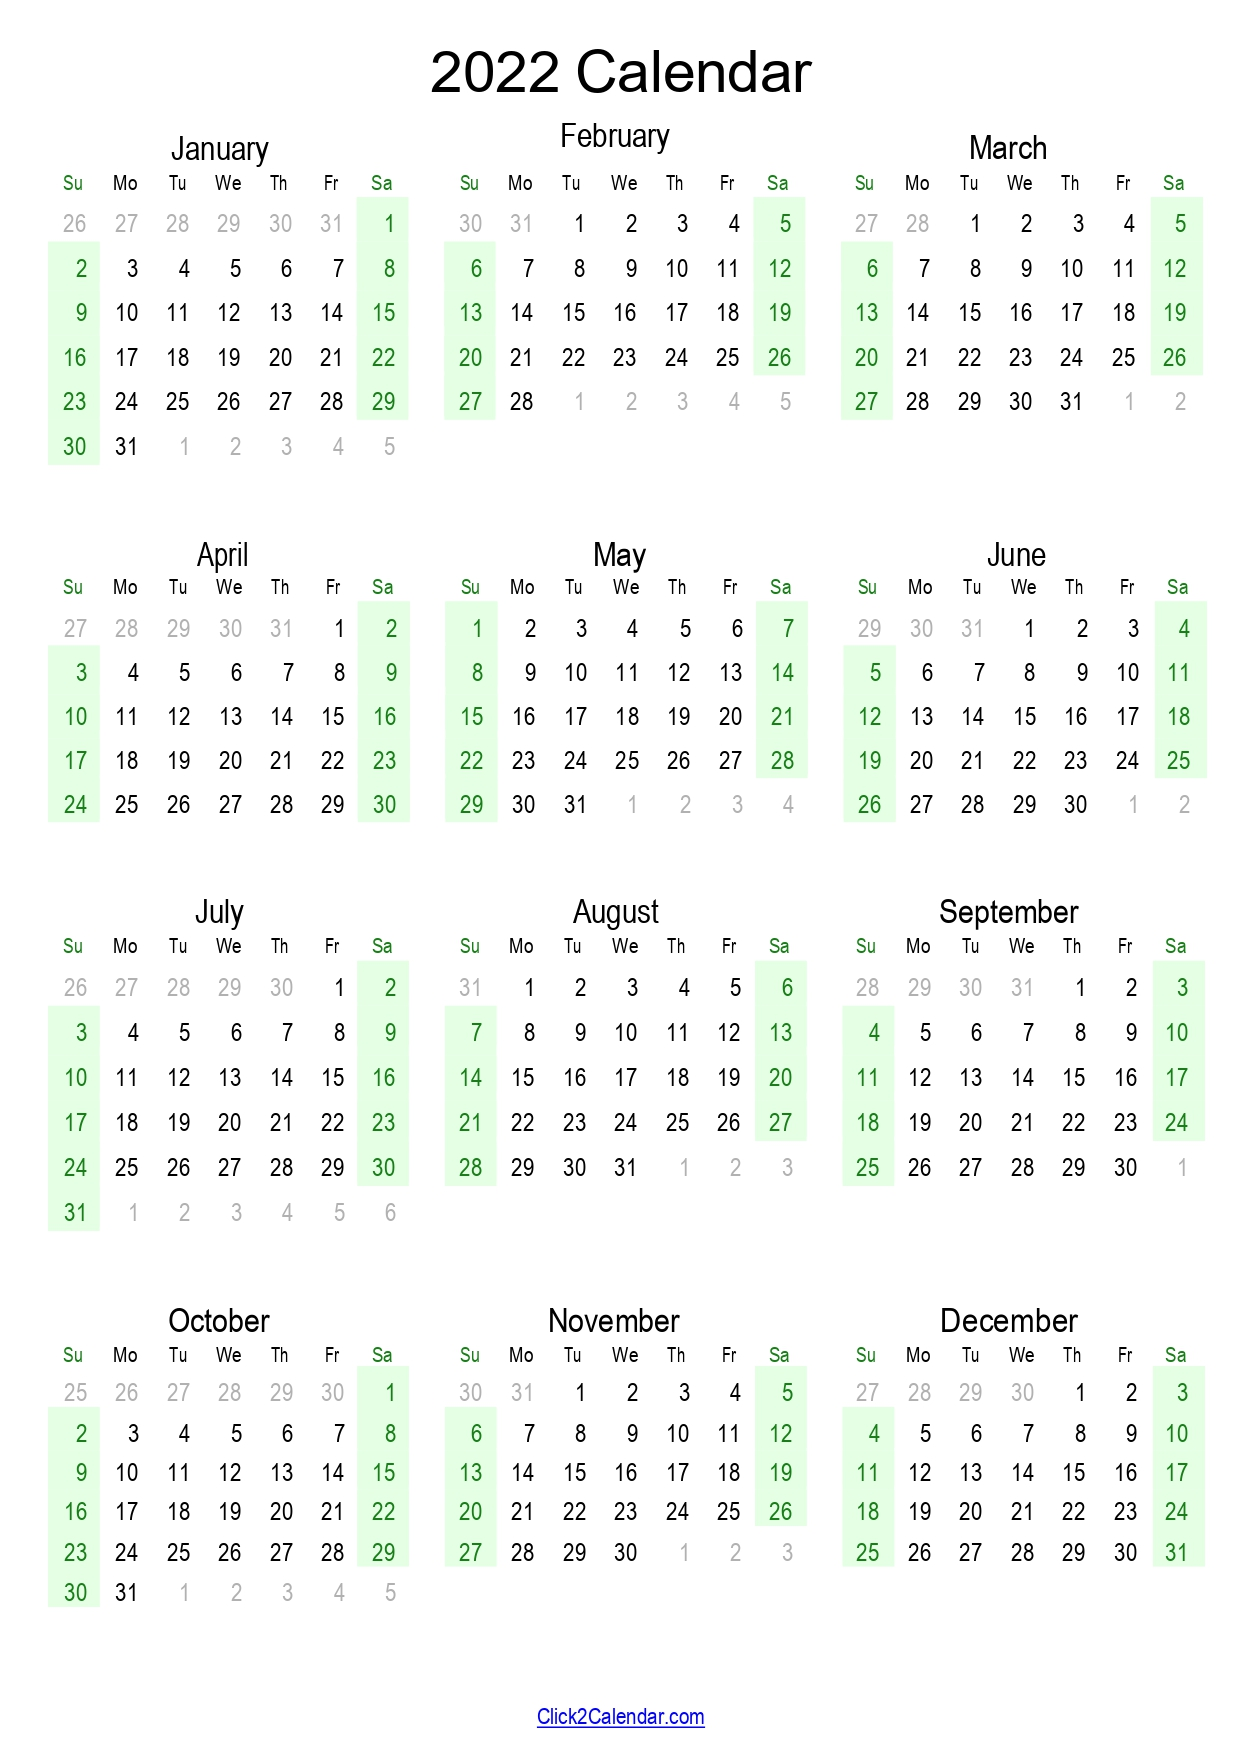 2022 Calendar Yearly One Page